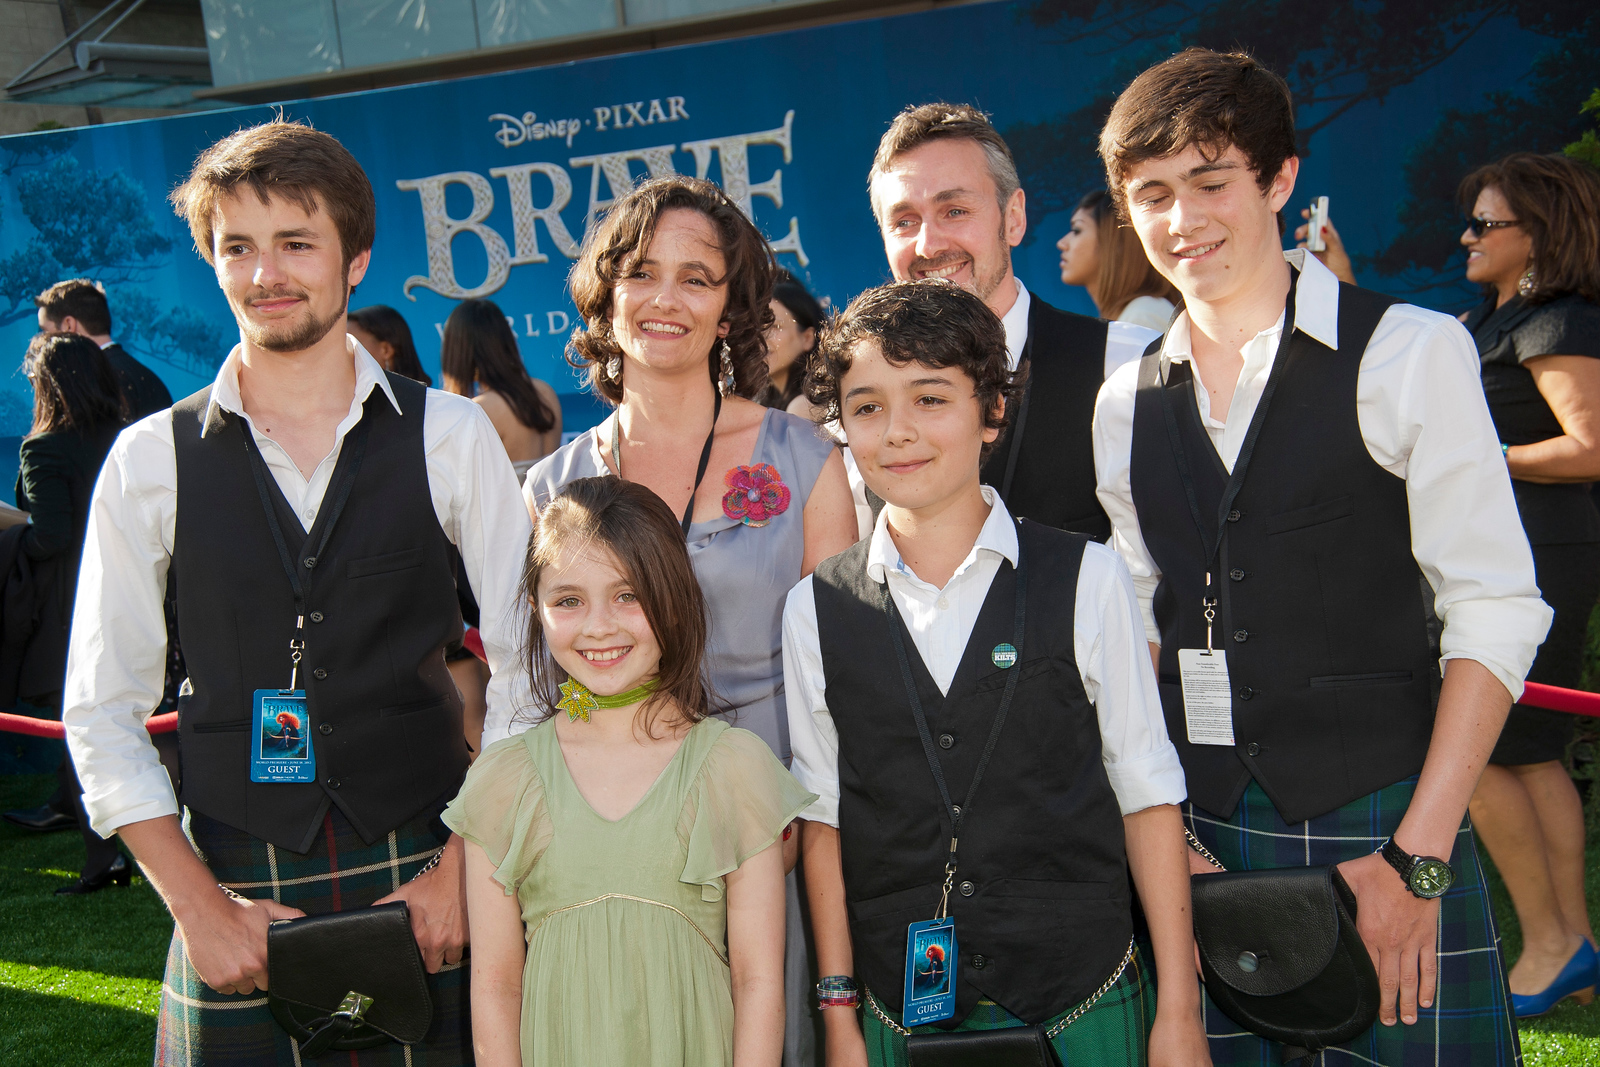 HOLLYWOOD, CA - JUNE 18: Actress Peigi Barker (front c) and family arrive at Disney Pixar's 'Brave' World Premiere at Dolby Theatre on June 18, 2012 in Hollywood, California. (Photo by Tom Sorensen/Moovieboy Pictures)